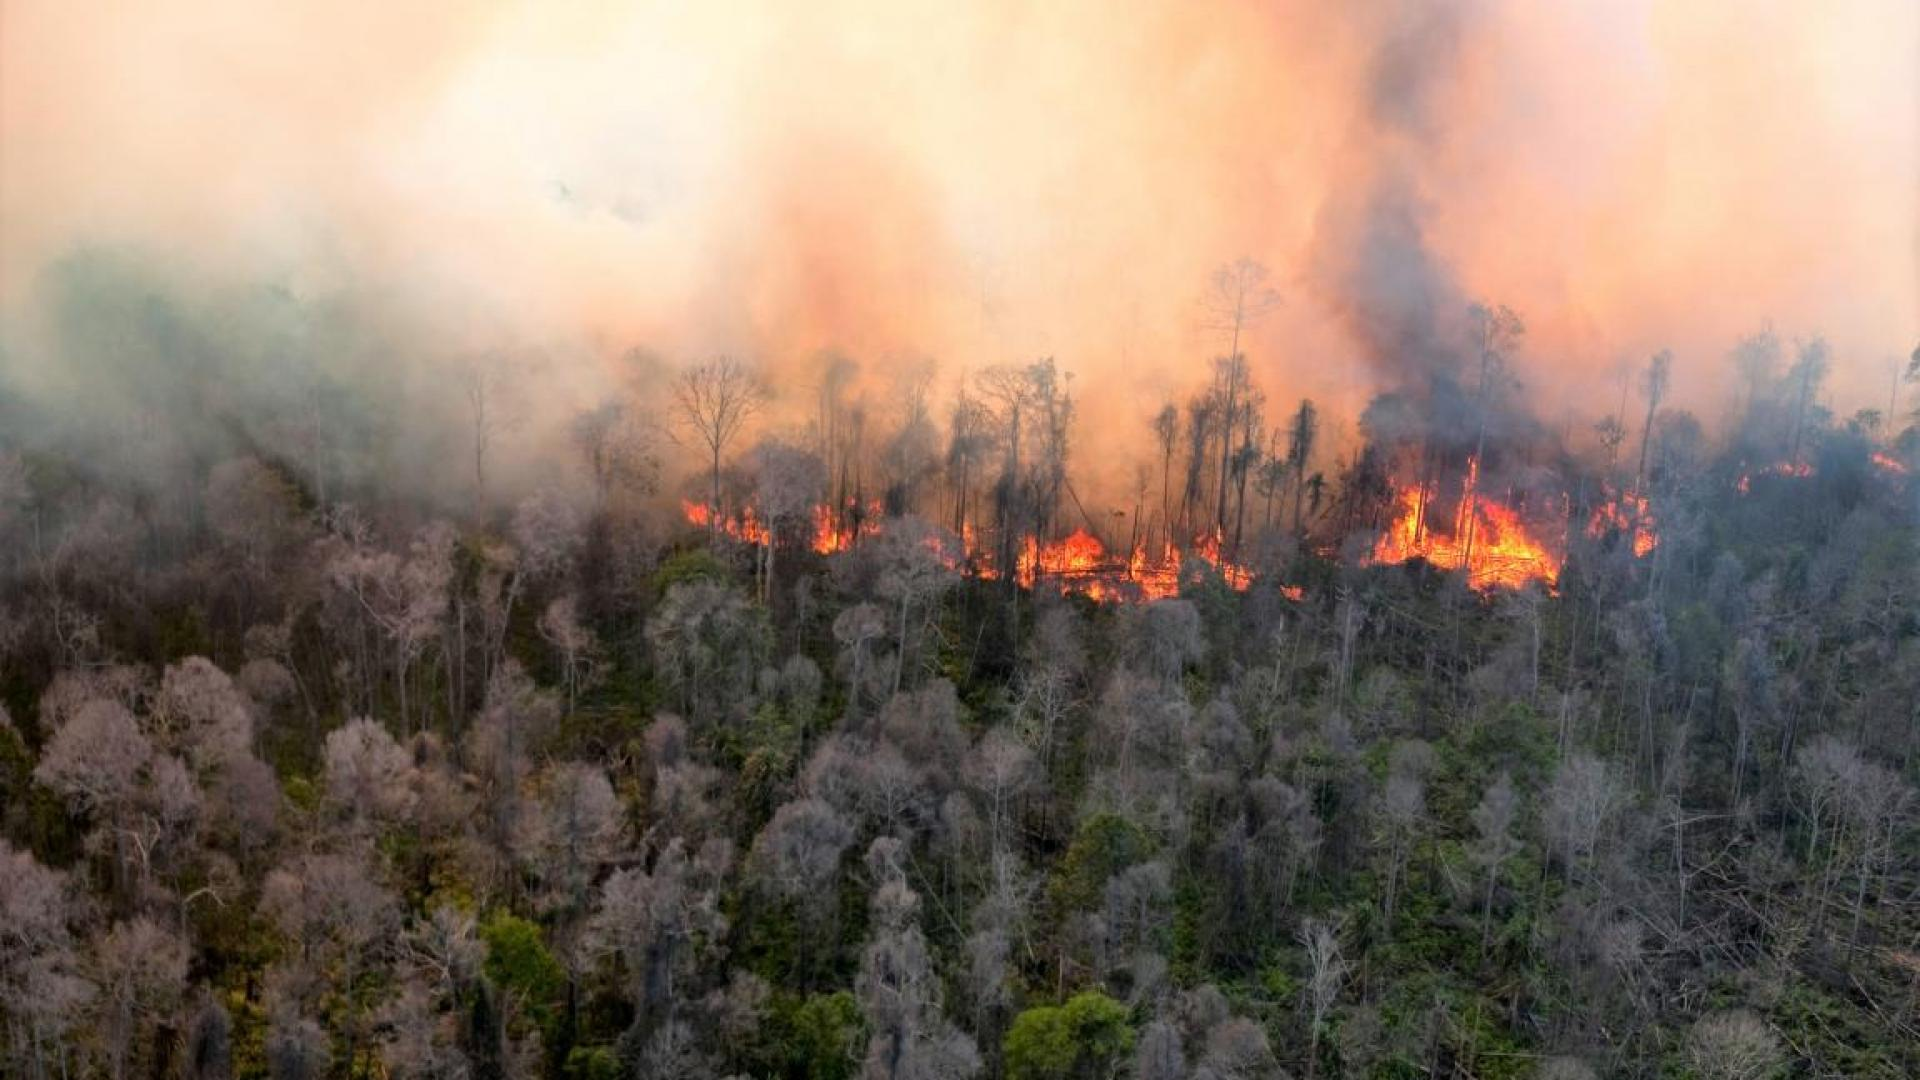 Image shows burning forest